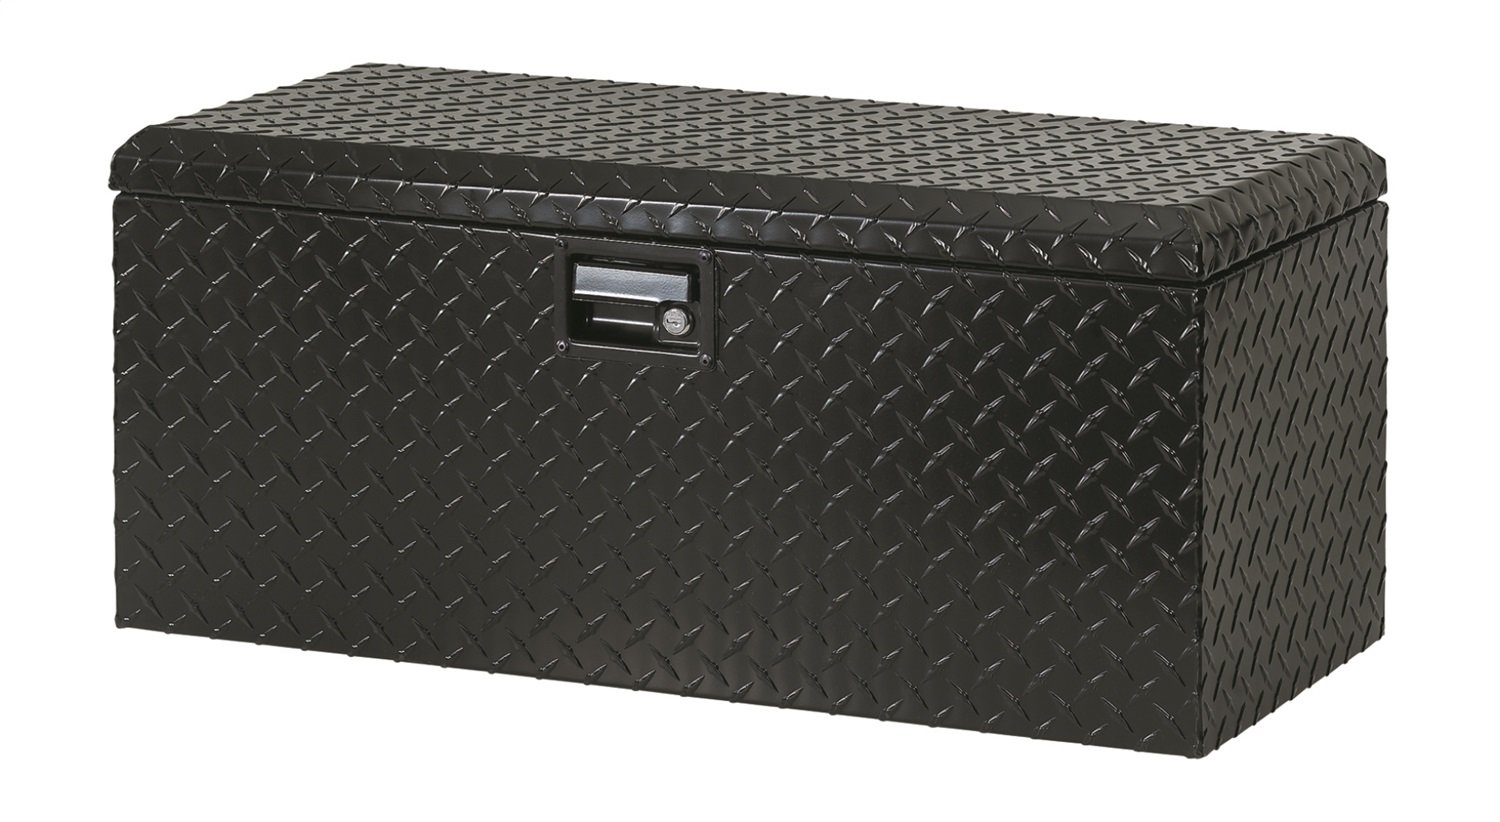 Lund 288271BK 32-Inch Aluminum ATV Storage Box, Diamond Plated, Black